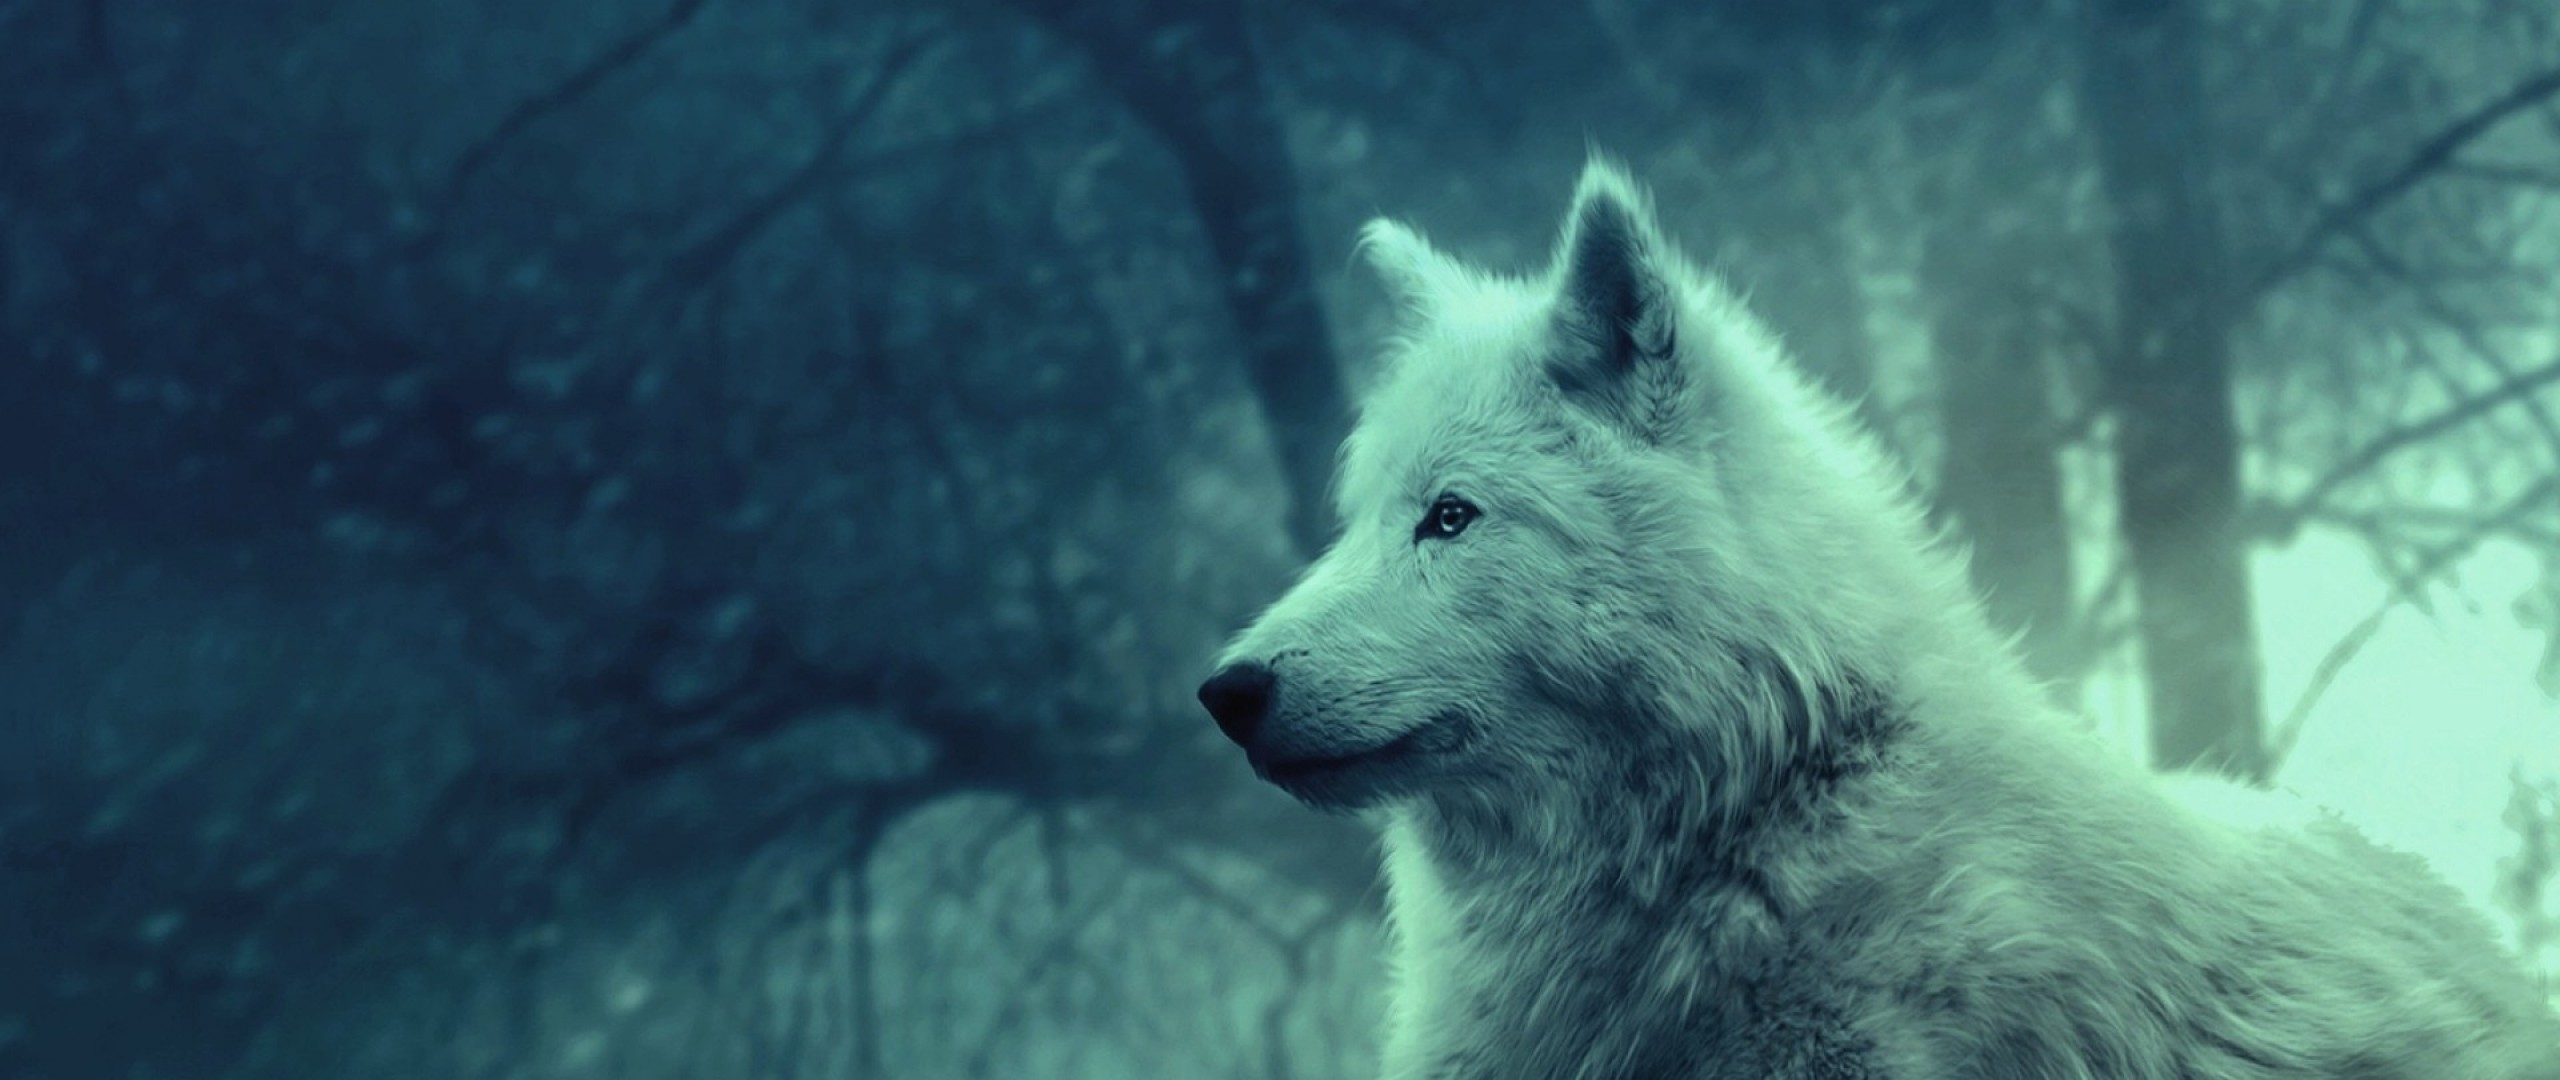 Wolf Howling Wallpaper (67+ images)